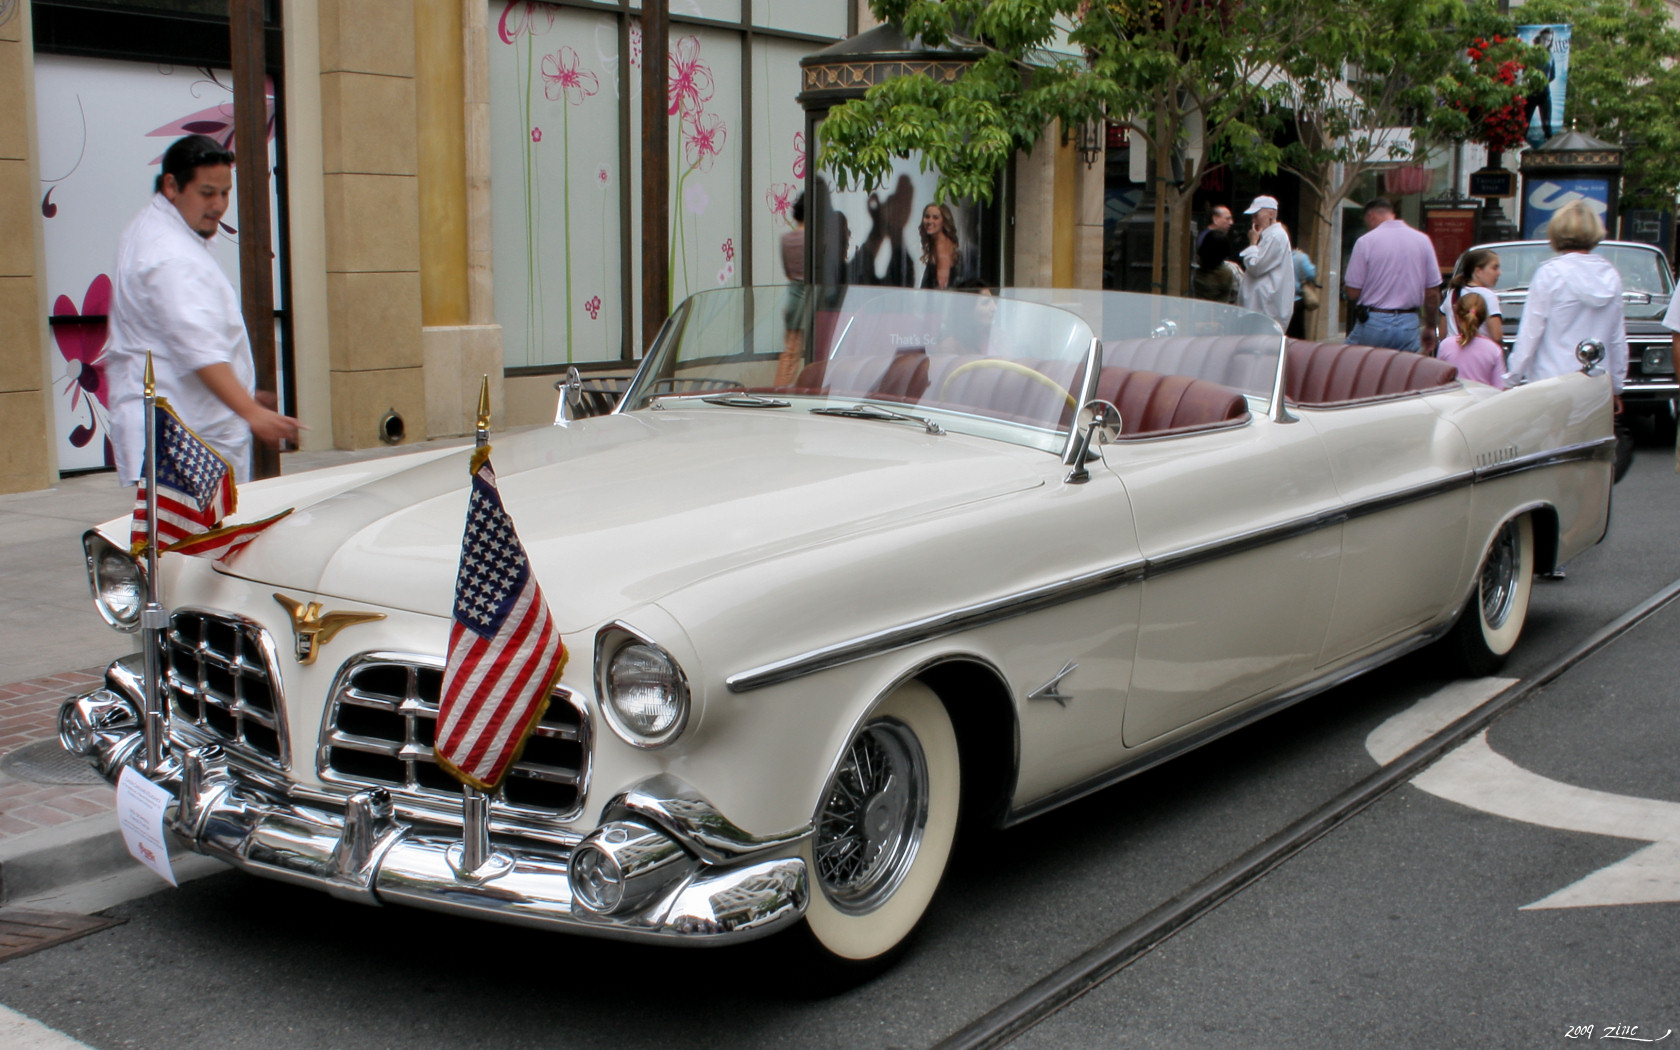 All The Presidents Cars Famous Us Drove Buy 1950s Chrysler What Car Did Dwight D Eisenhower Drive Imperial